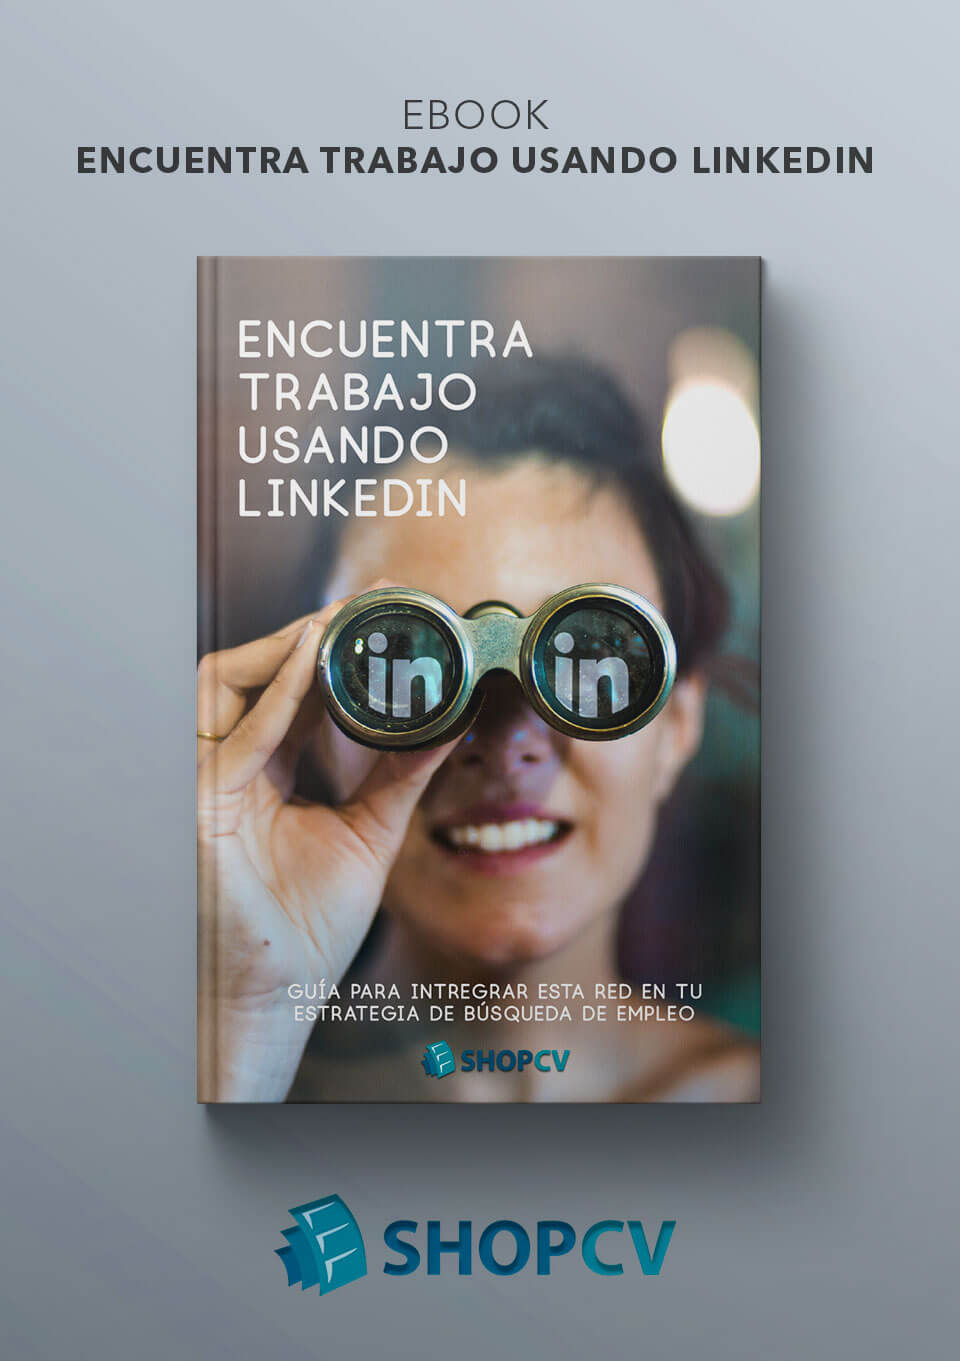 Ebook Encuentra trabajo usando LinkedIn - Shop CV